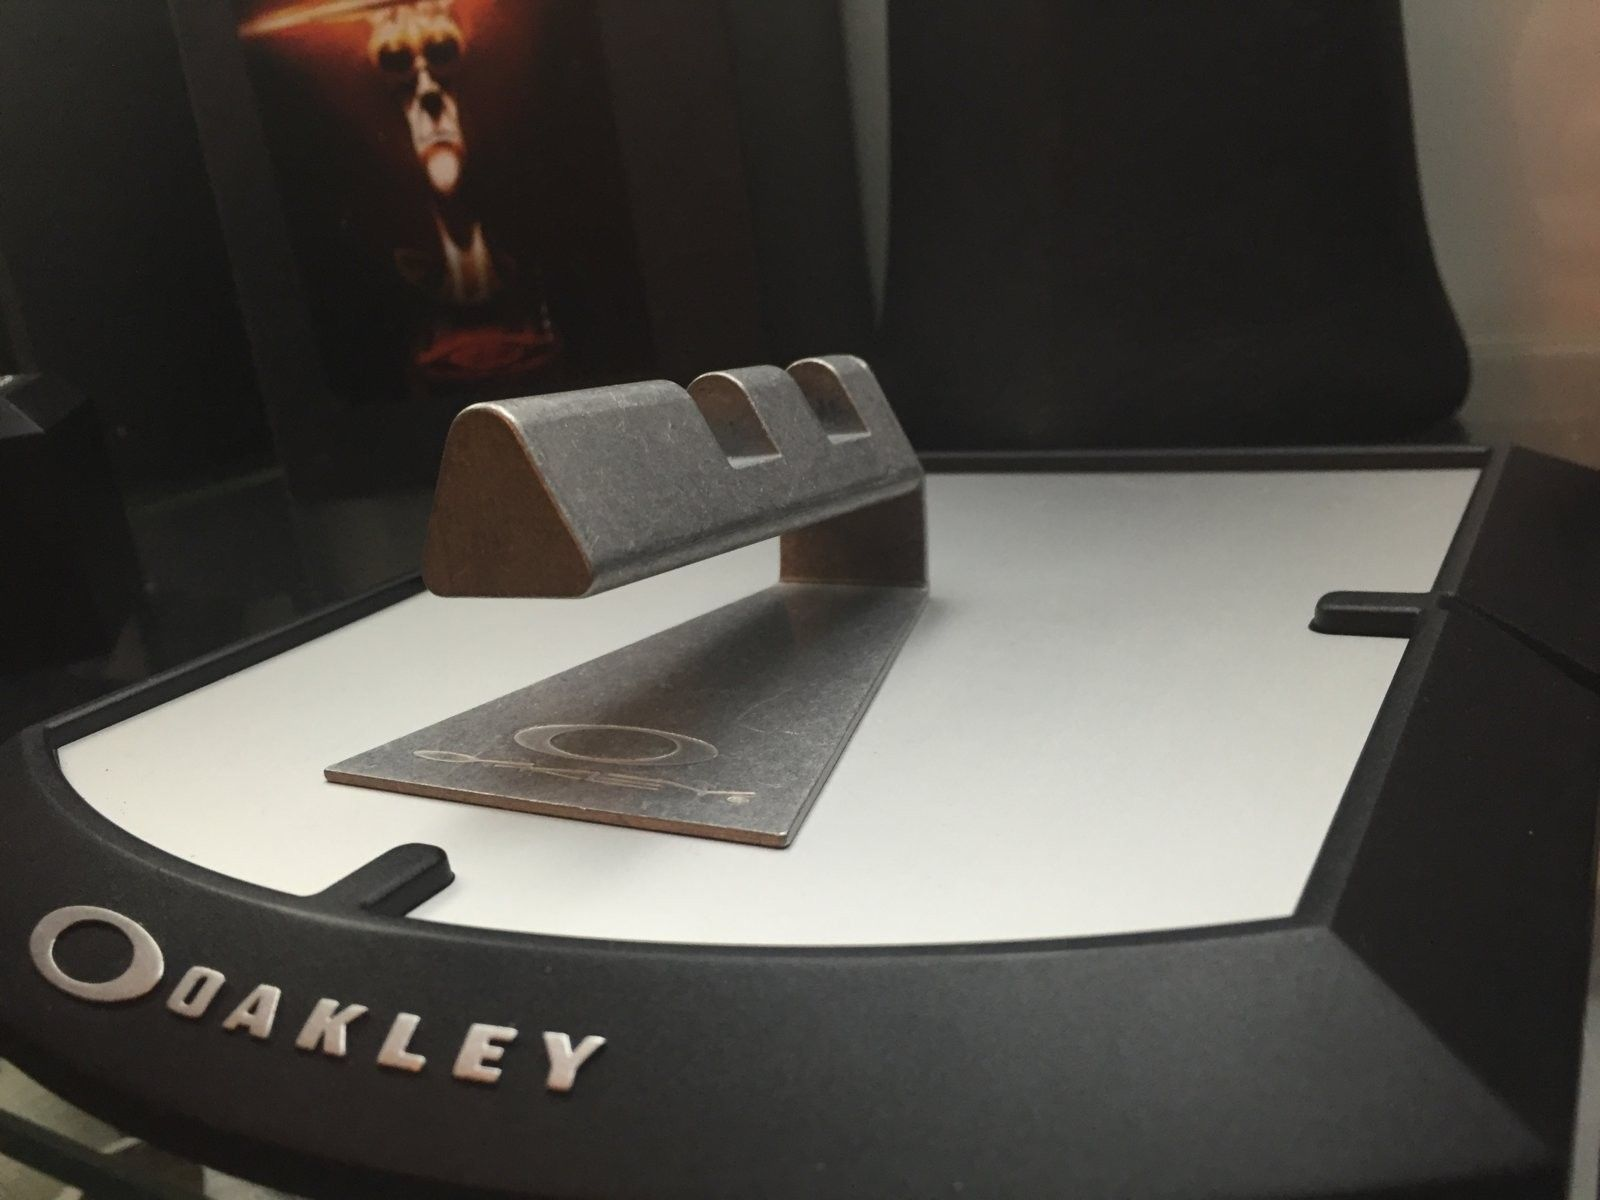 Oakley metal display -  one tier - image.jpeg